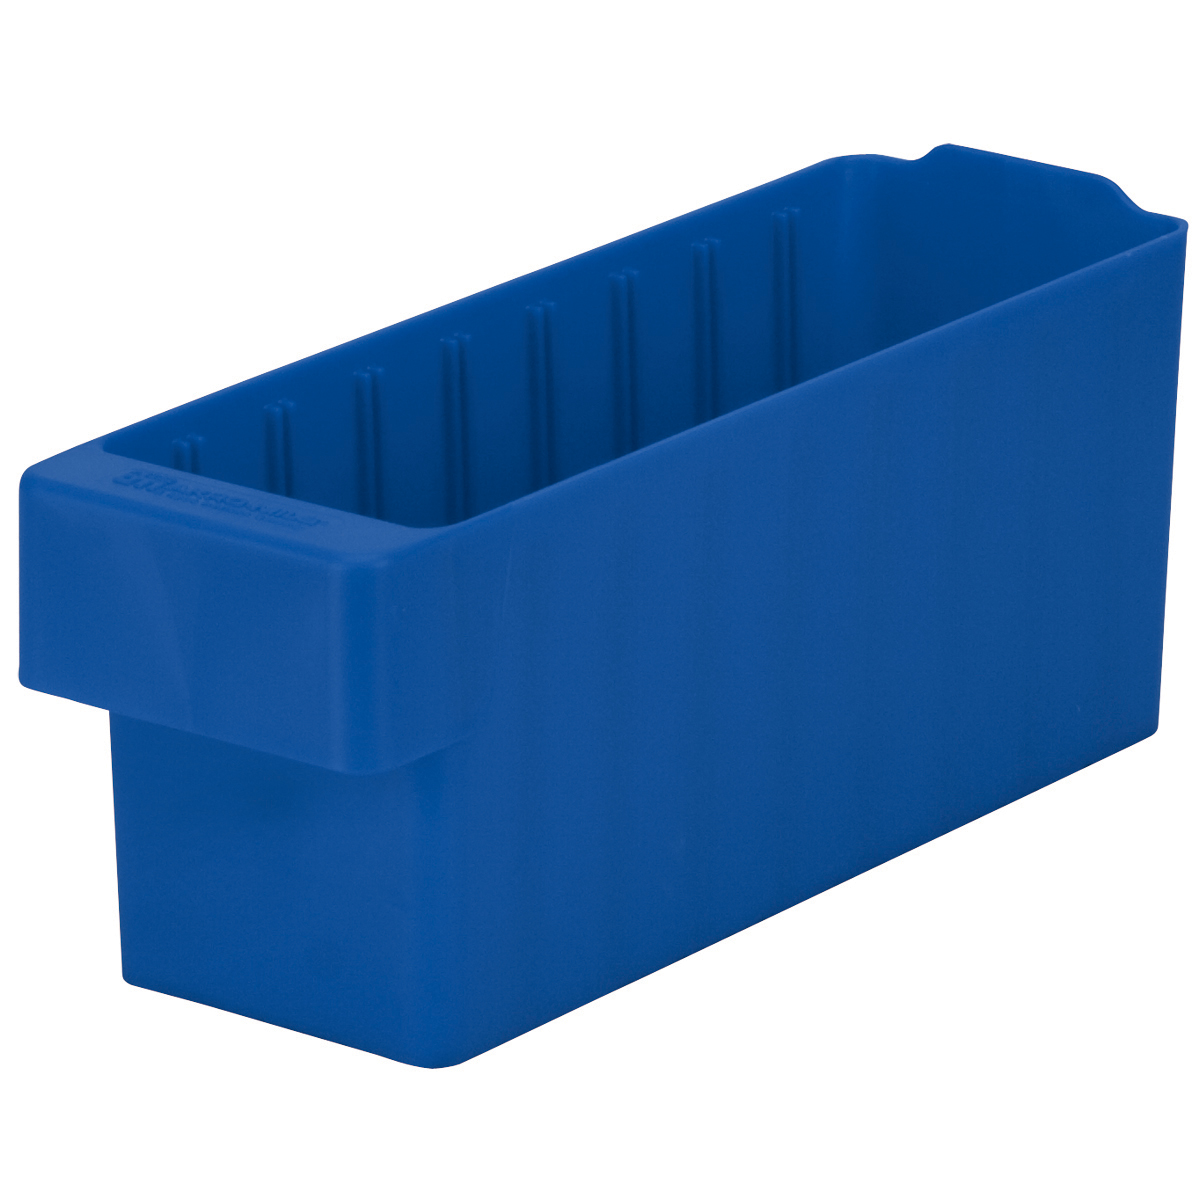 AkroDrawer 11-5/8 x 3-3/4 x 4-5/8, Blue (31142BLU).  This item sold in carton quantities of 6.